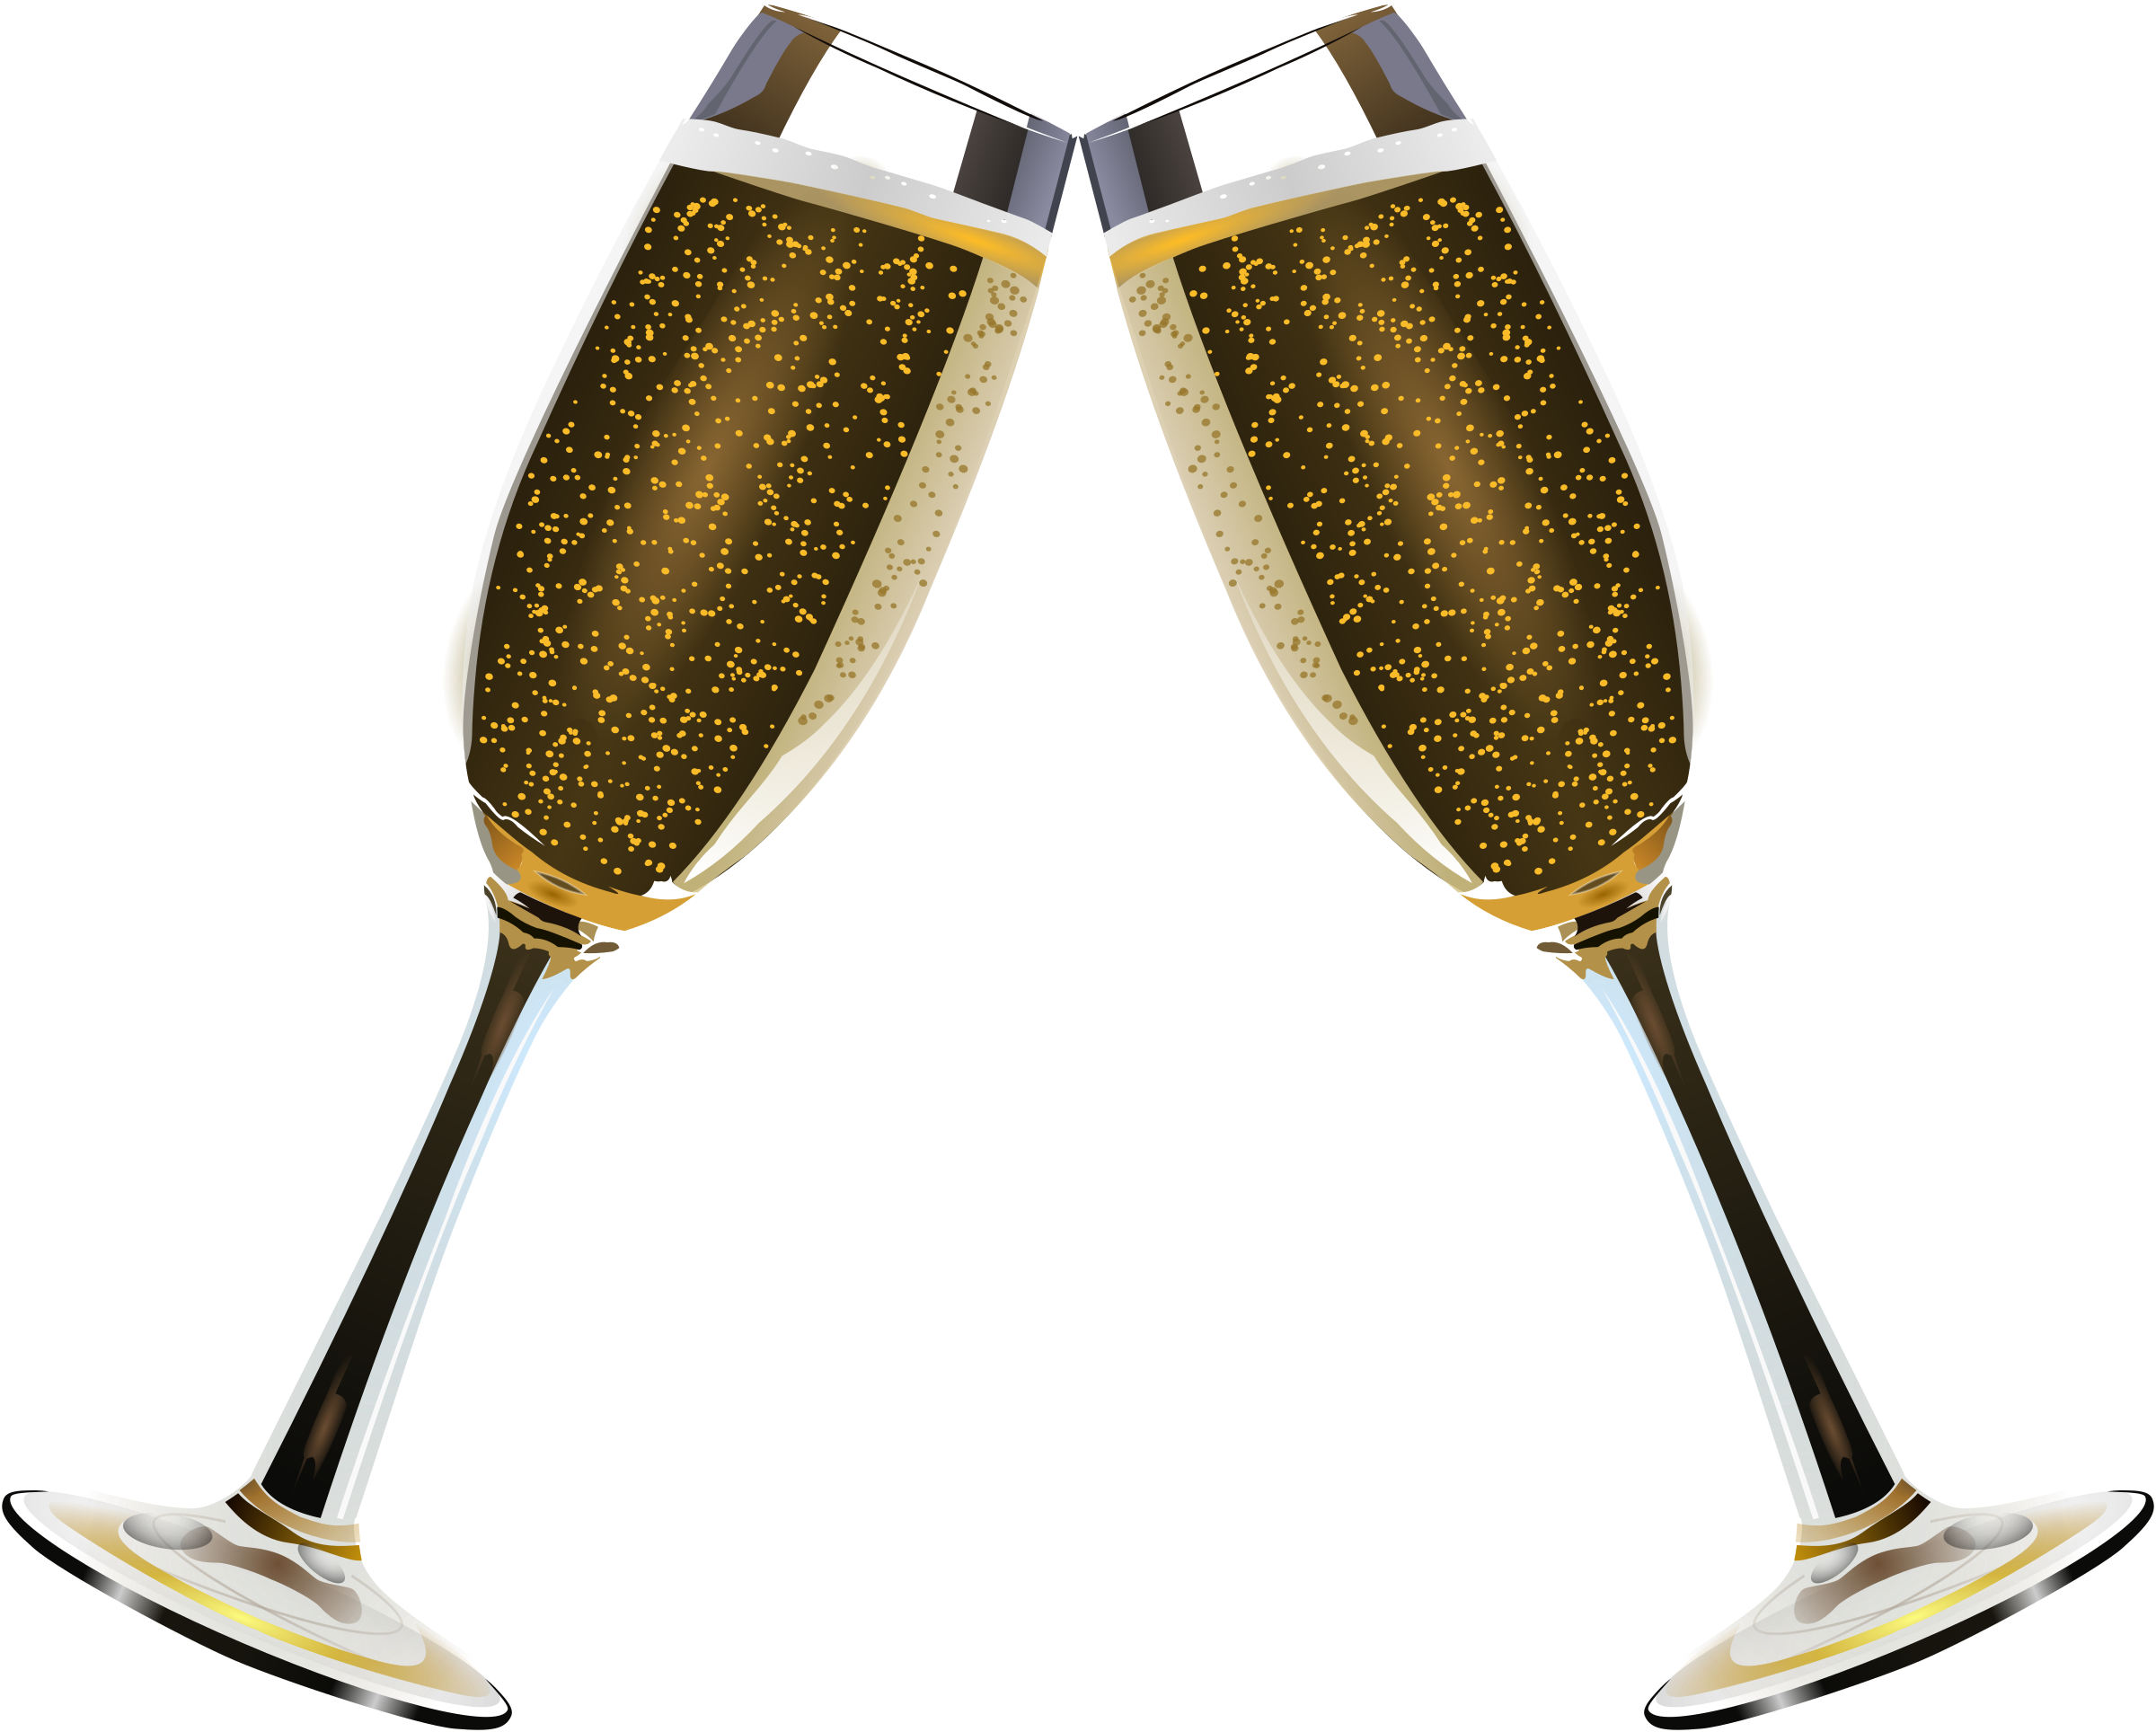 image transparent Toaster transparent glass. Champagne png images all.